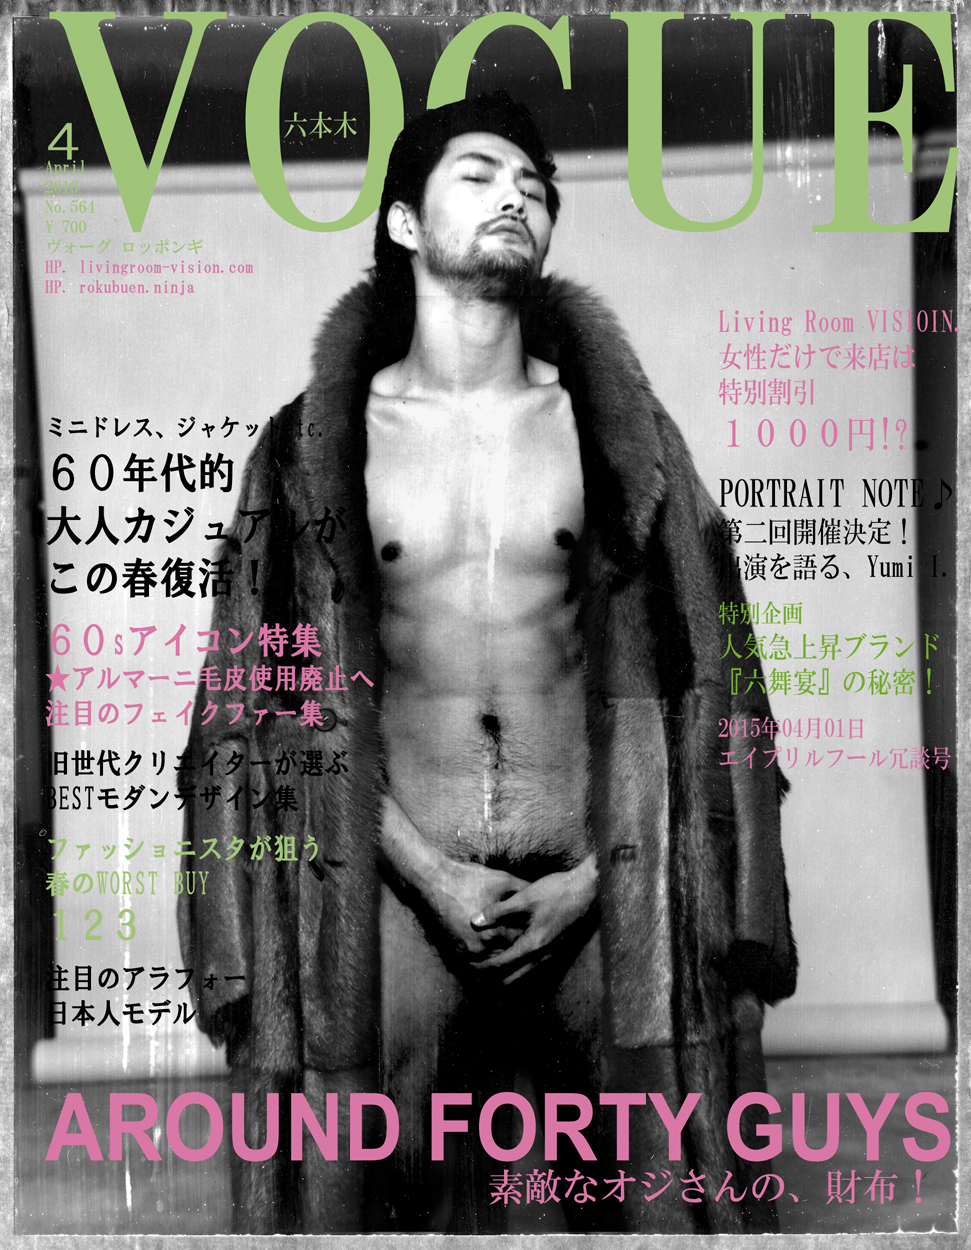 Daisuke A of VOGUE for April Fool